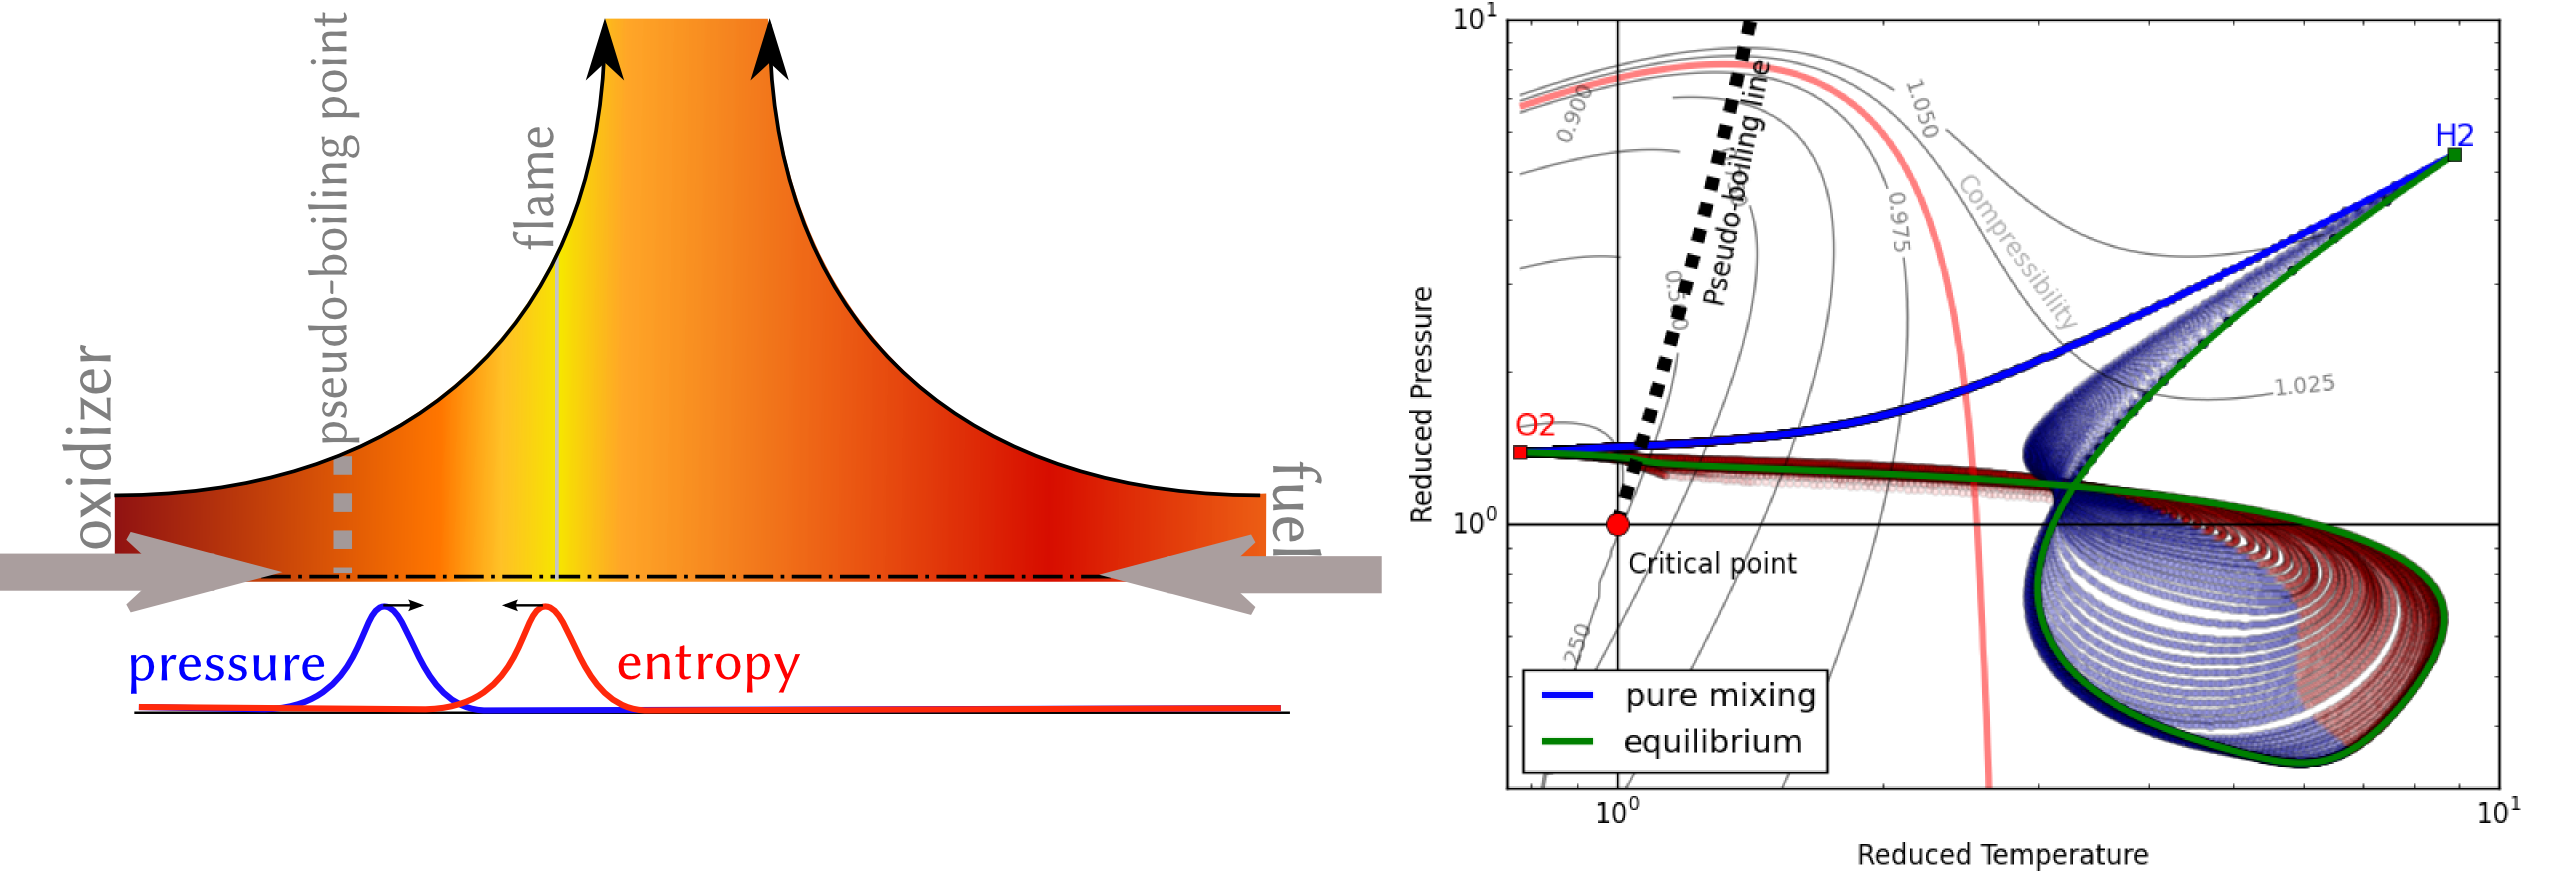 Thermoacoustic Oscillation in Cryogenic Diffusion Flames